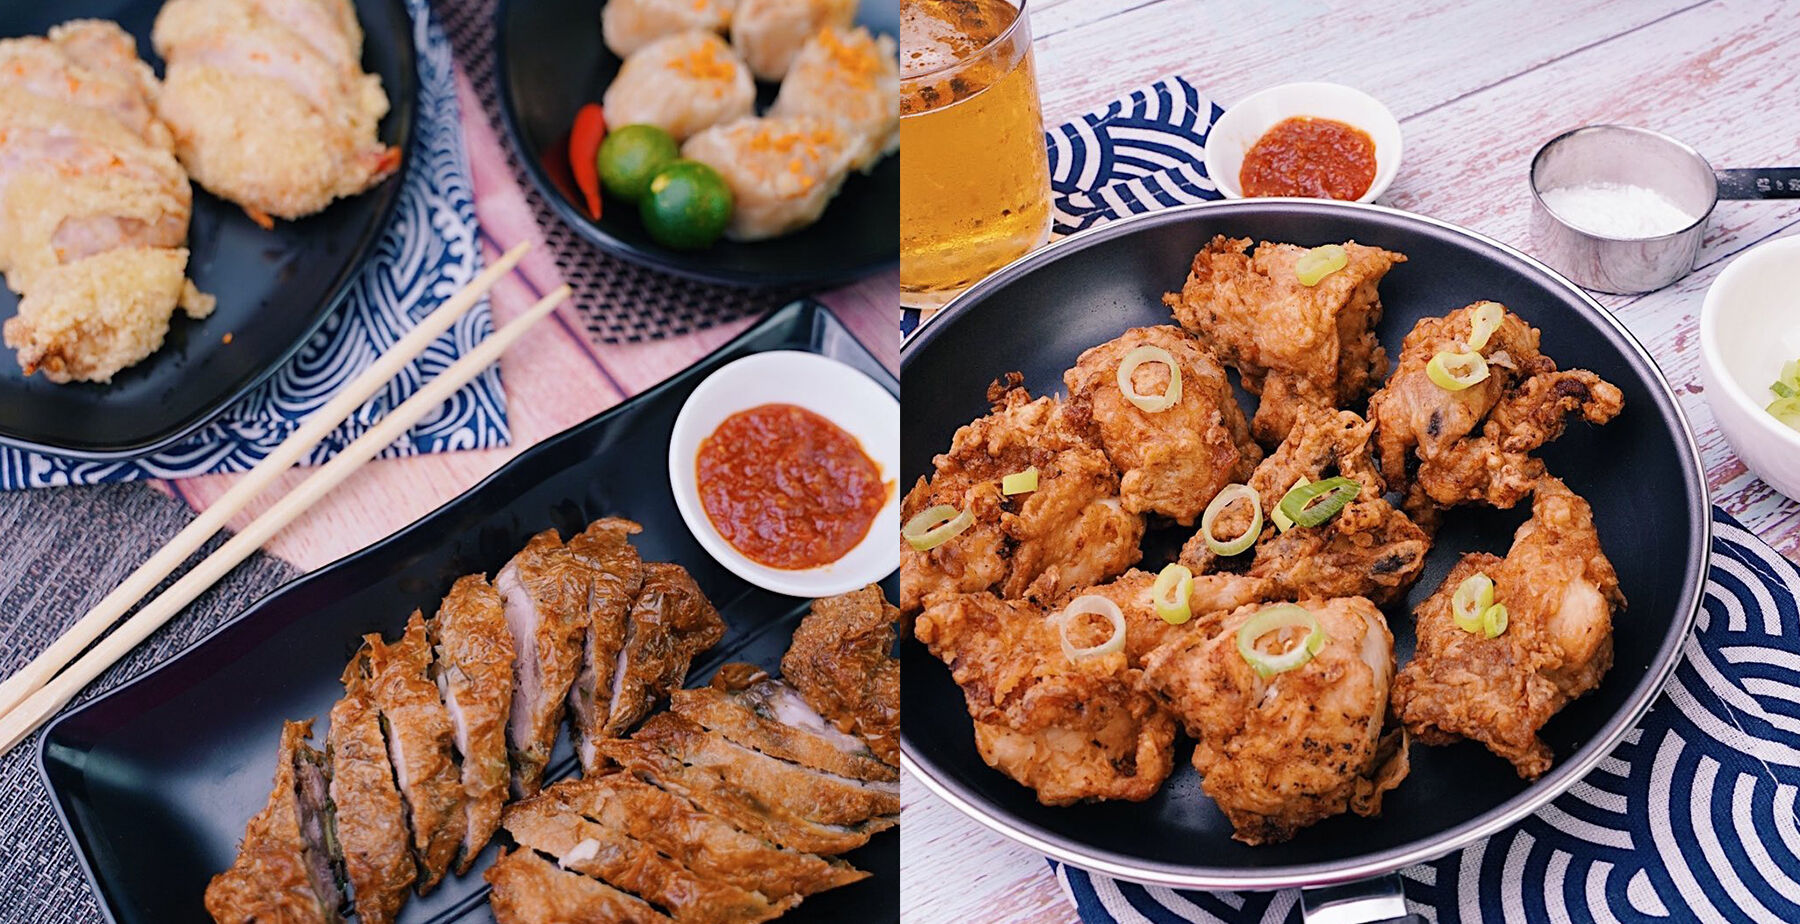 Chicken and other dishes from Sincerity